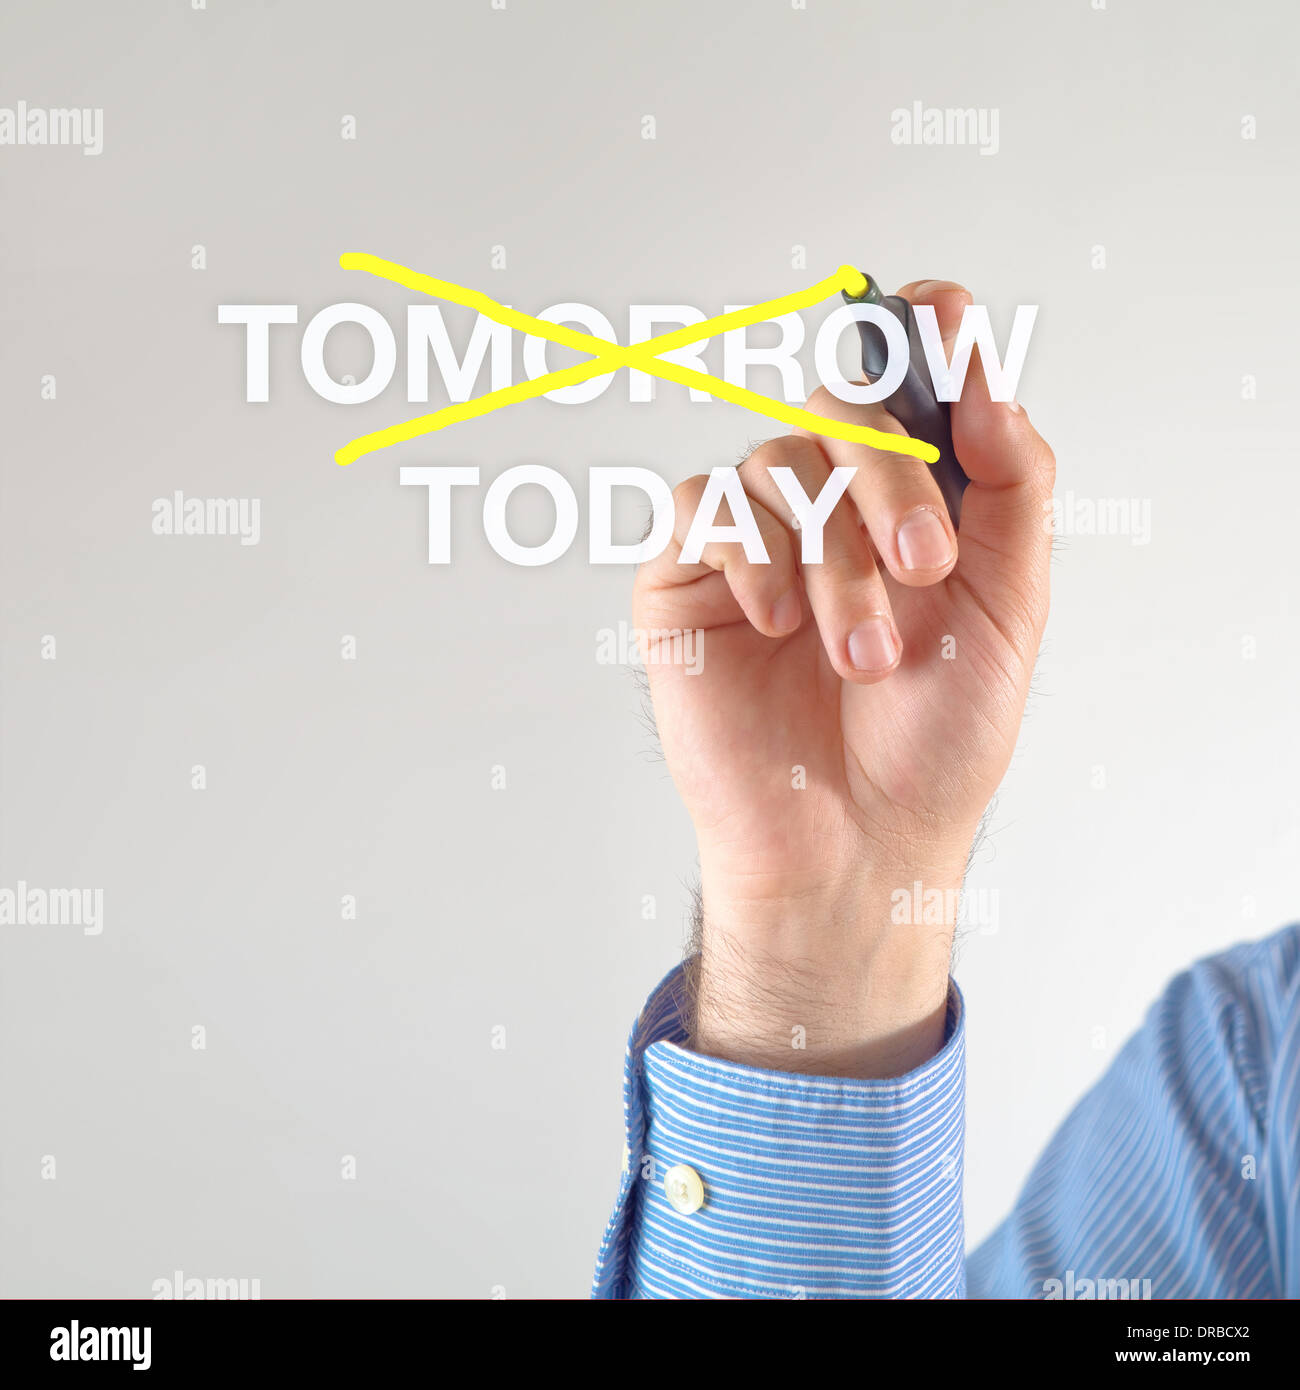 Businessman crosses off tomorrow for TODAY with yellow marker pen on the screen - Stock Image